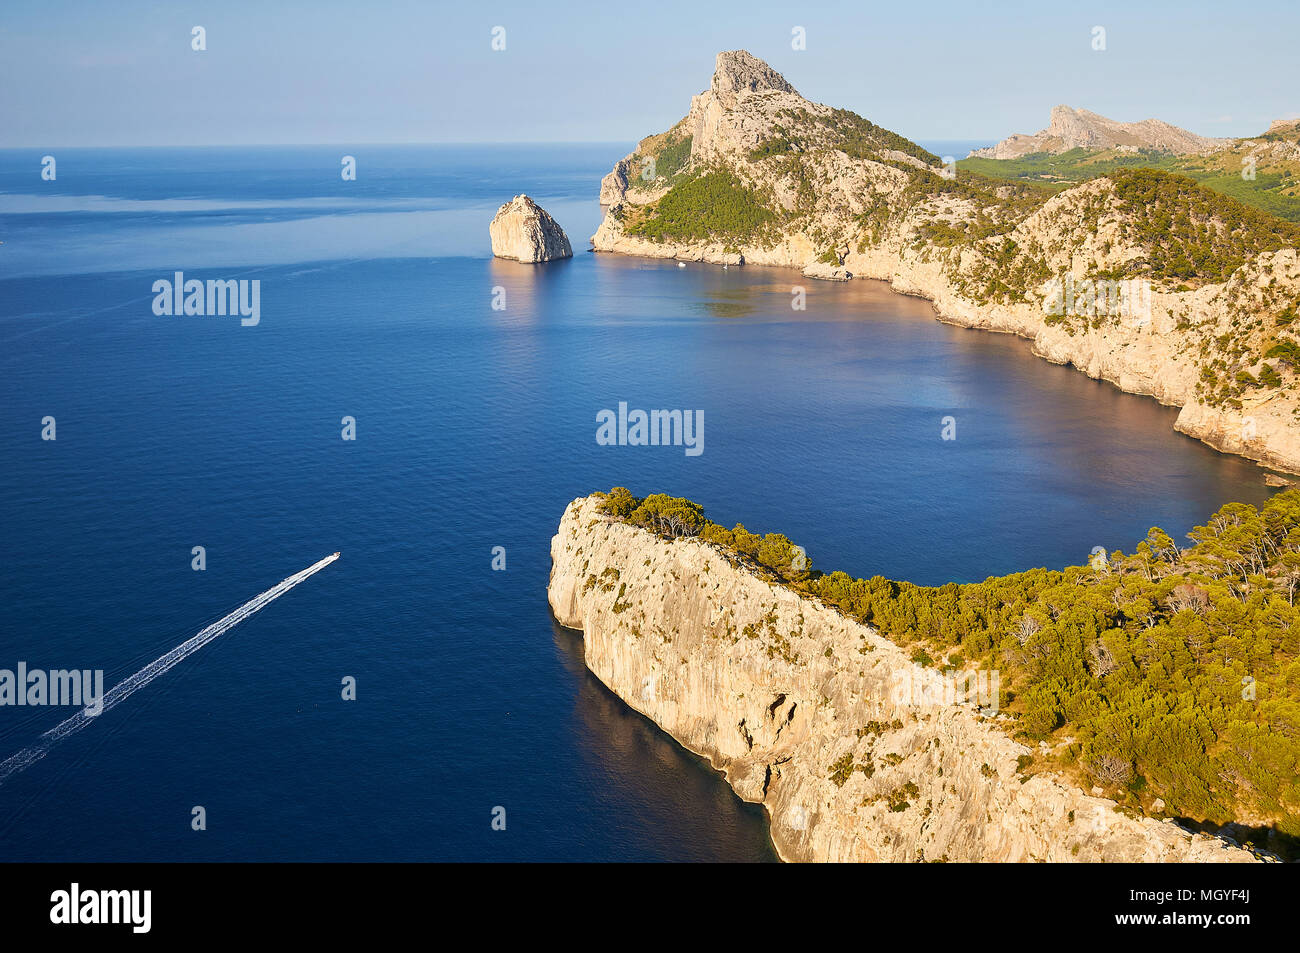 Panoramic view from Es Colomer overlook showing Es Colomer island and Punta Nau at Serra de Tramontana in Pollenca (Majorca, Balearic Islands, Spain) - Stock Image